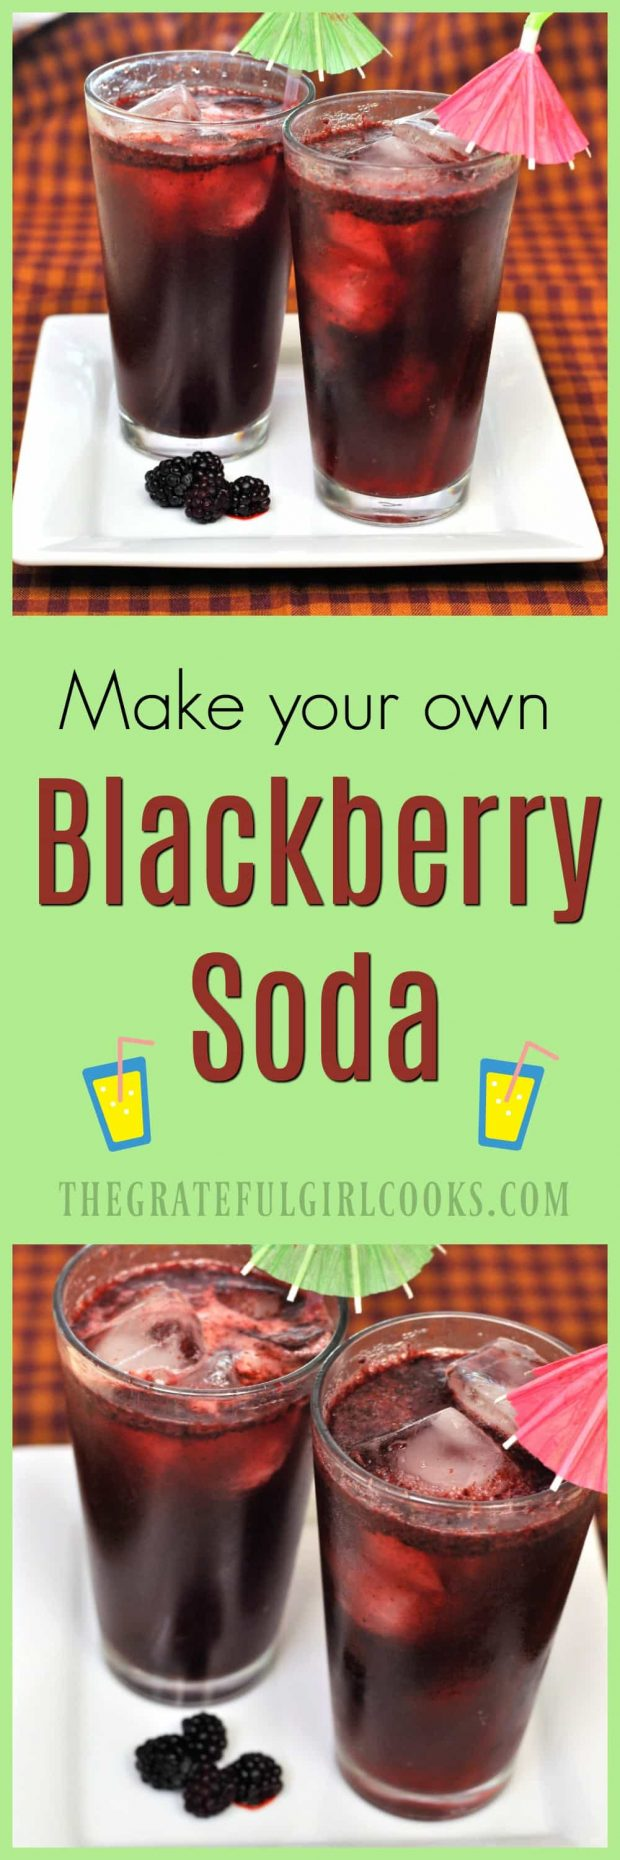 Blackberry Soda / The Grateful Girl Cooks! It's EASY to make your own, using a few simple ingredients!